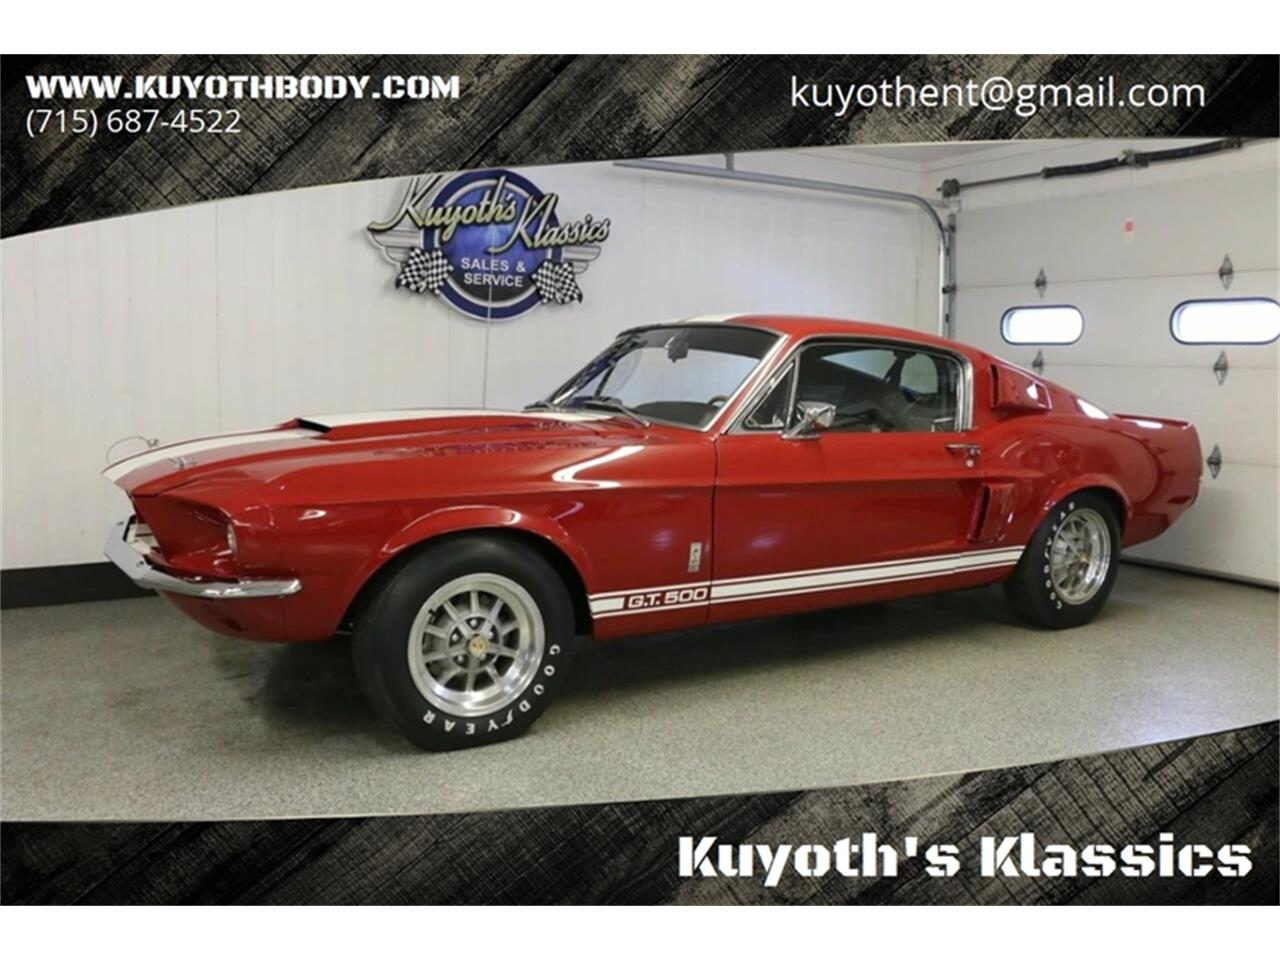 For Sale: 1967 Shelby GT500 in Stratford, Wisconsin